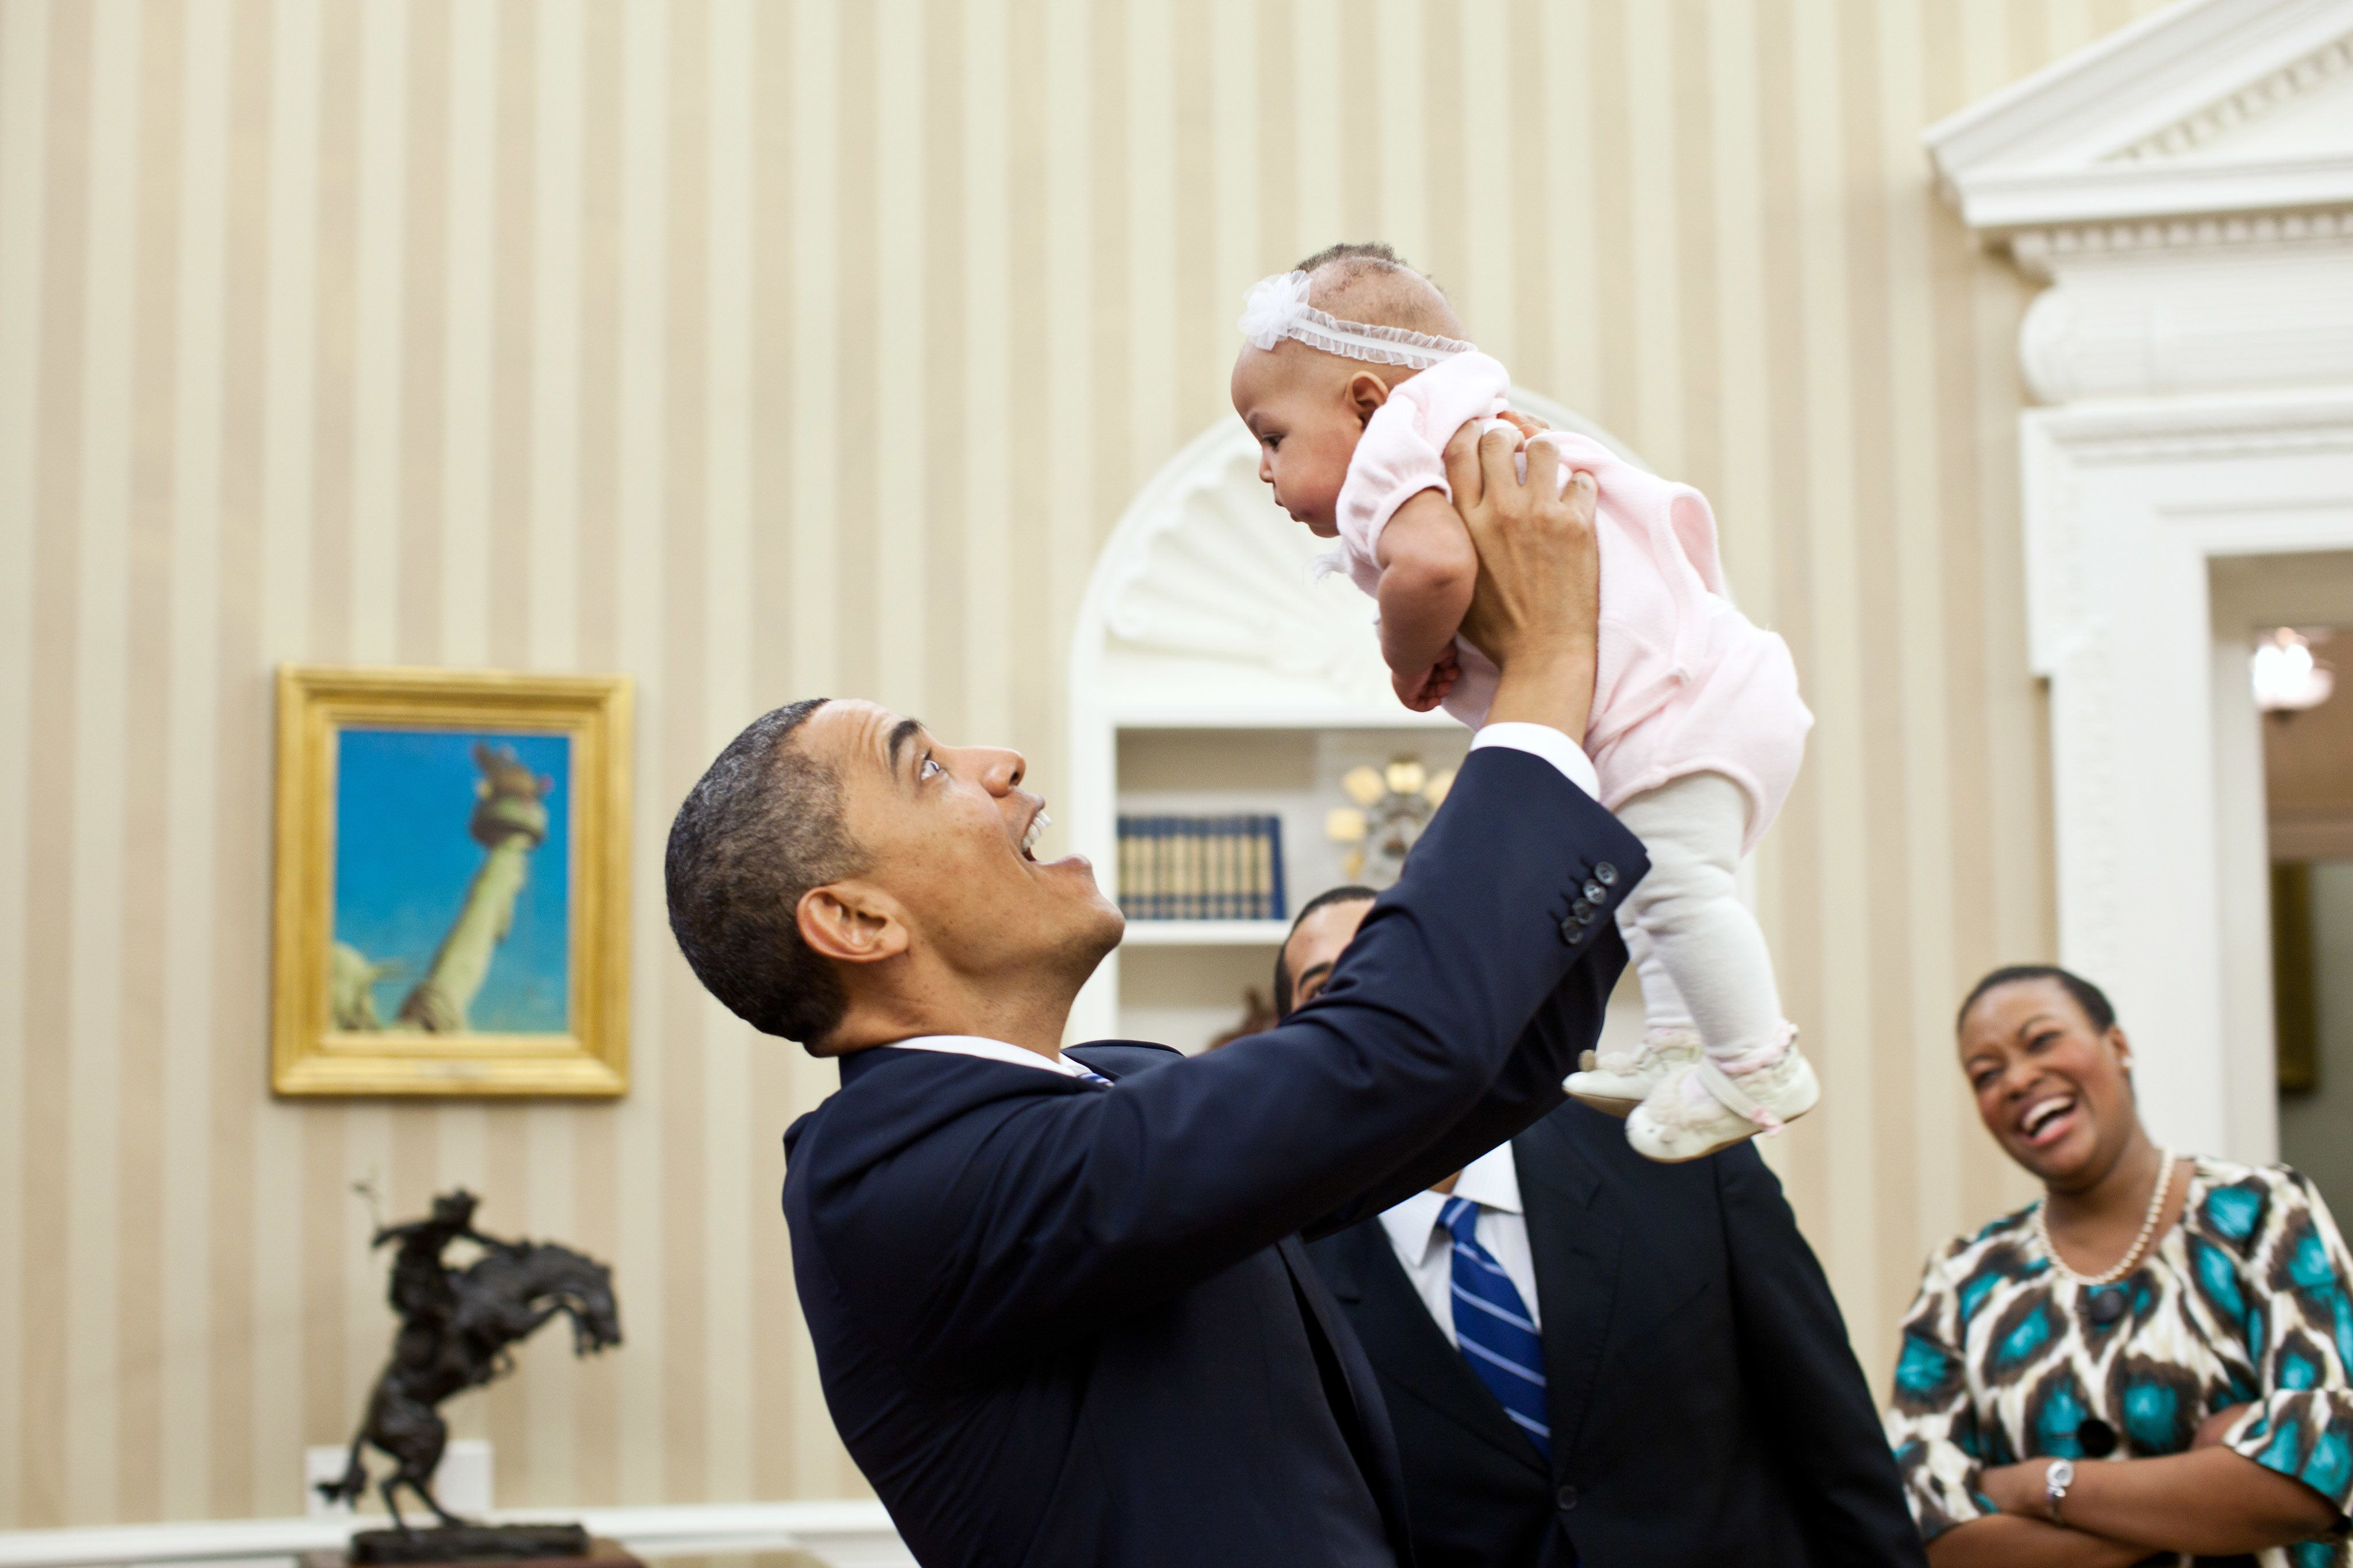 President Barack Obama holds up four-month-old Alia Jawando as her father, William Jawando, Deputy Associate Director of Public Engagement, and her mother Michele look on in the Oval Office, March 9, 2011. (Official White House Photo by Pete Souza)